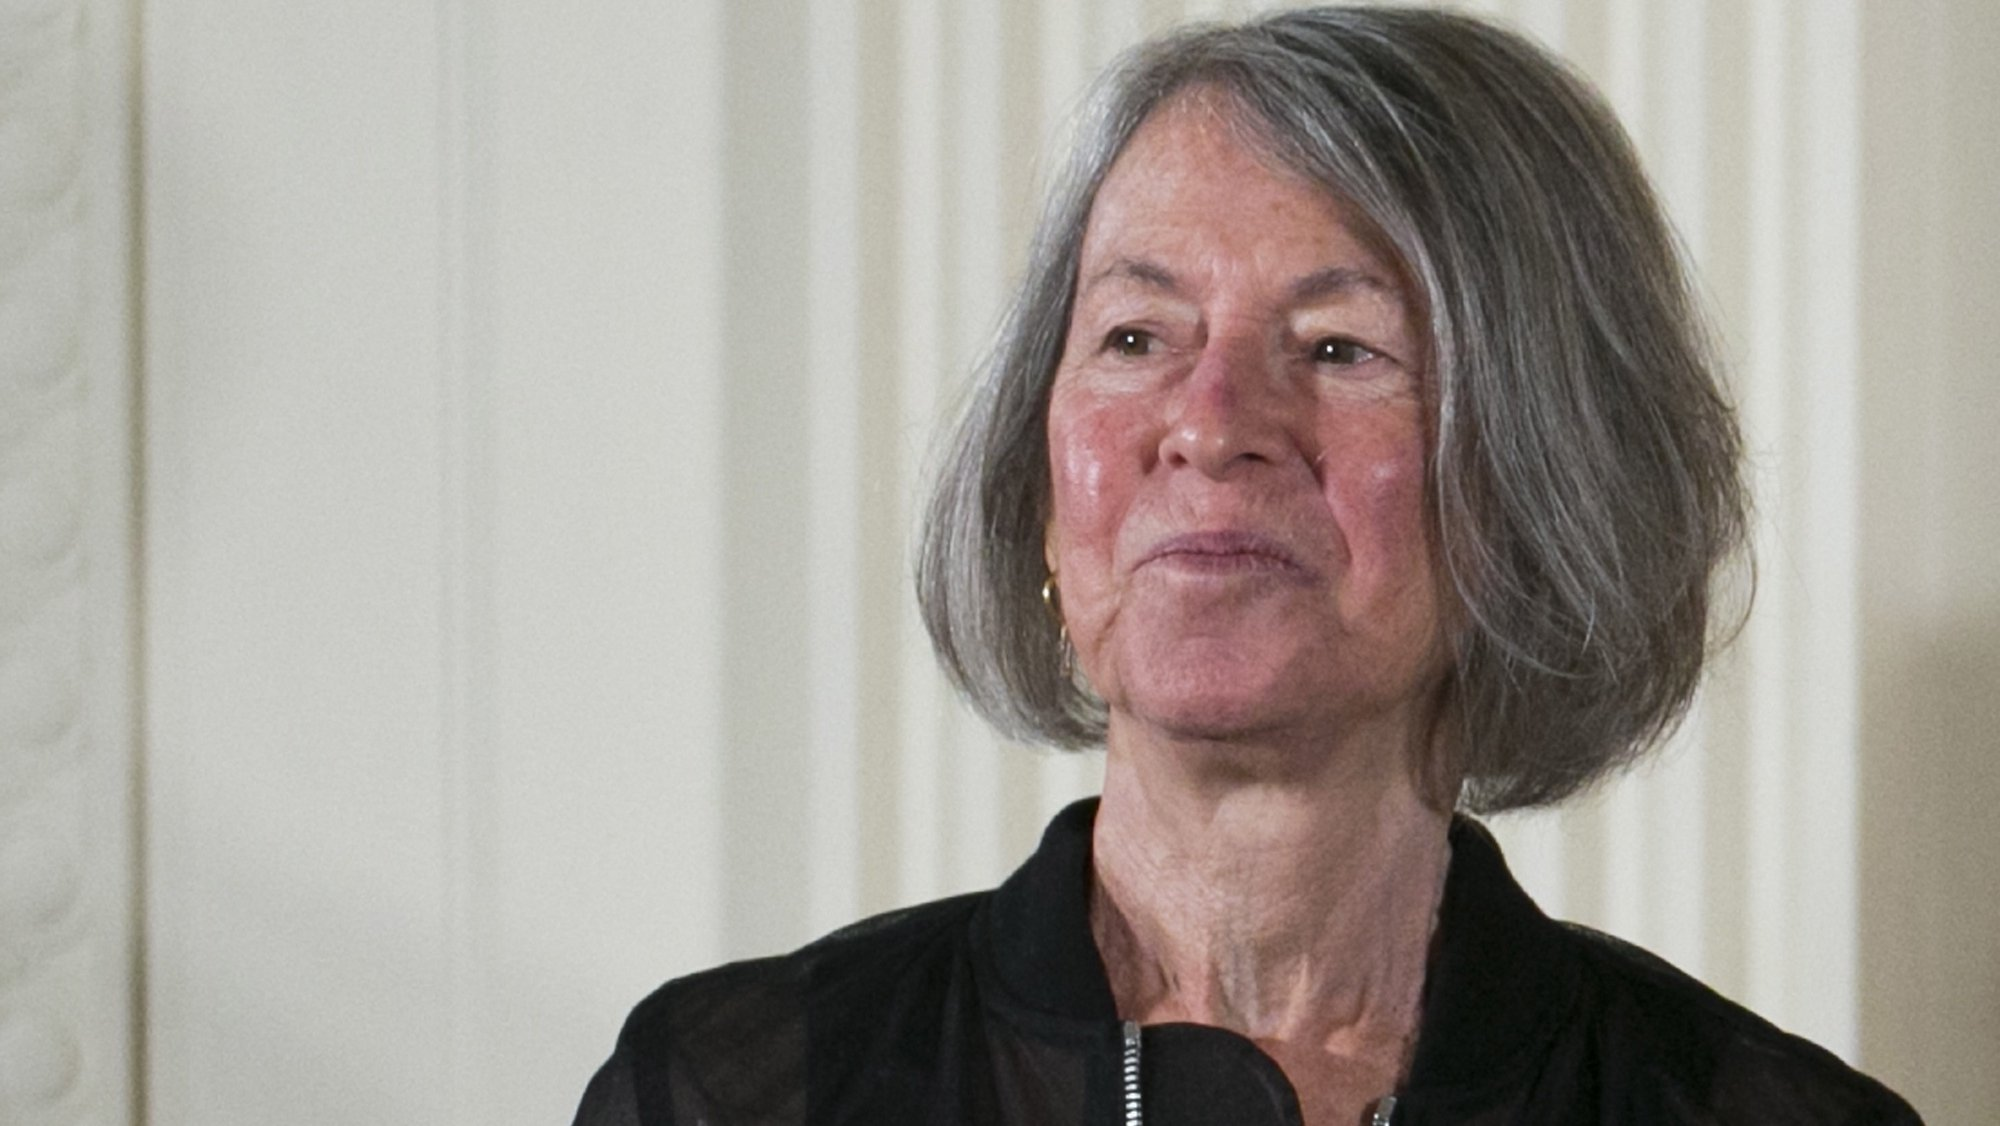 epa08728920 (FILE) - US poet Louise Gluck with the 2015 National Humanities Medal during a ceremony in the East Room of the White House in Washington, DC, USA, 22 September 2016 (reissued 08 October 2020). The 2020 Nobel Prize in Literature has been awarded to Louise Glueck, the Swedish Academy has announced.  EPA/SHAWN THEW *** Local Caption *** 53031868